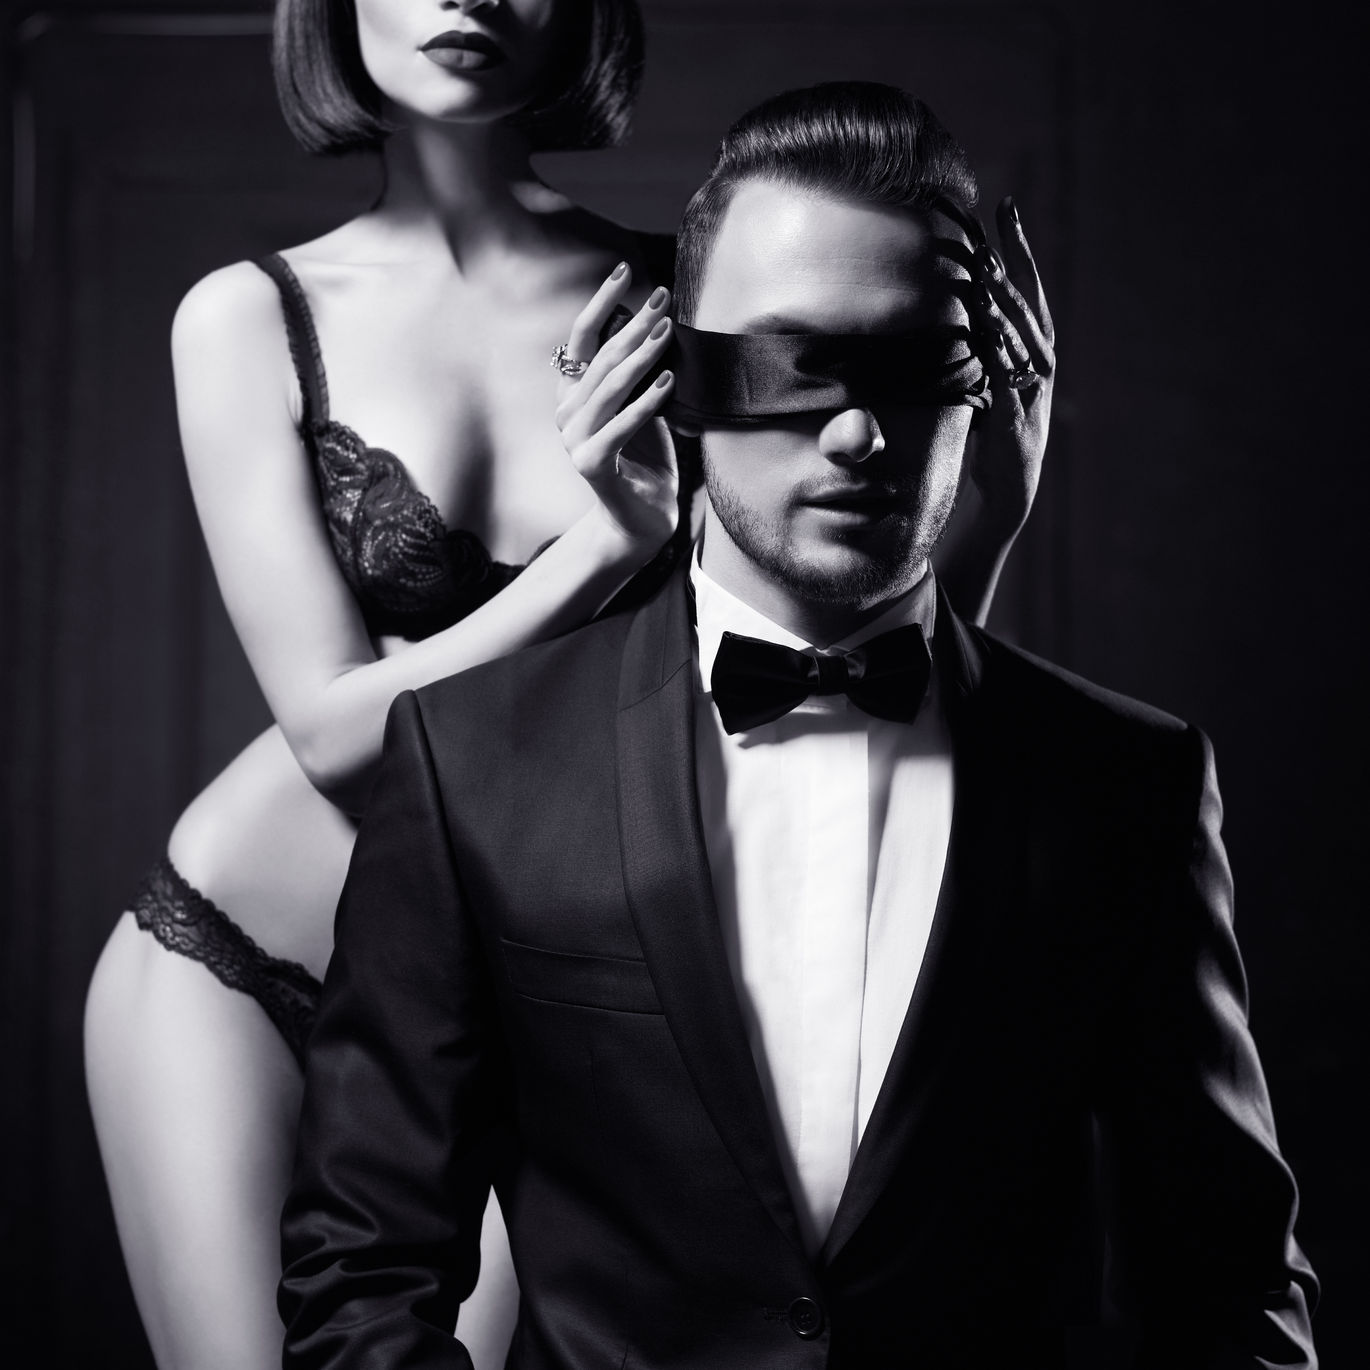 40322499 – fashion studio photo of a sensual couple in lingerie and a tuxedo